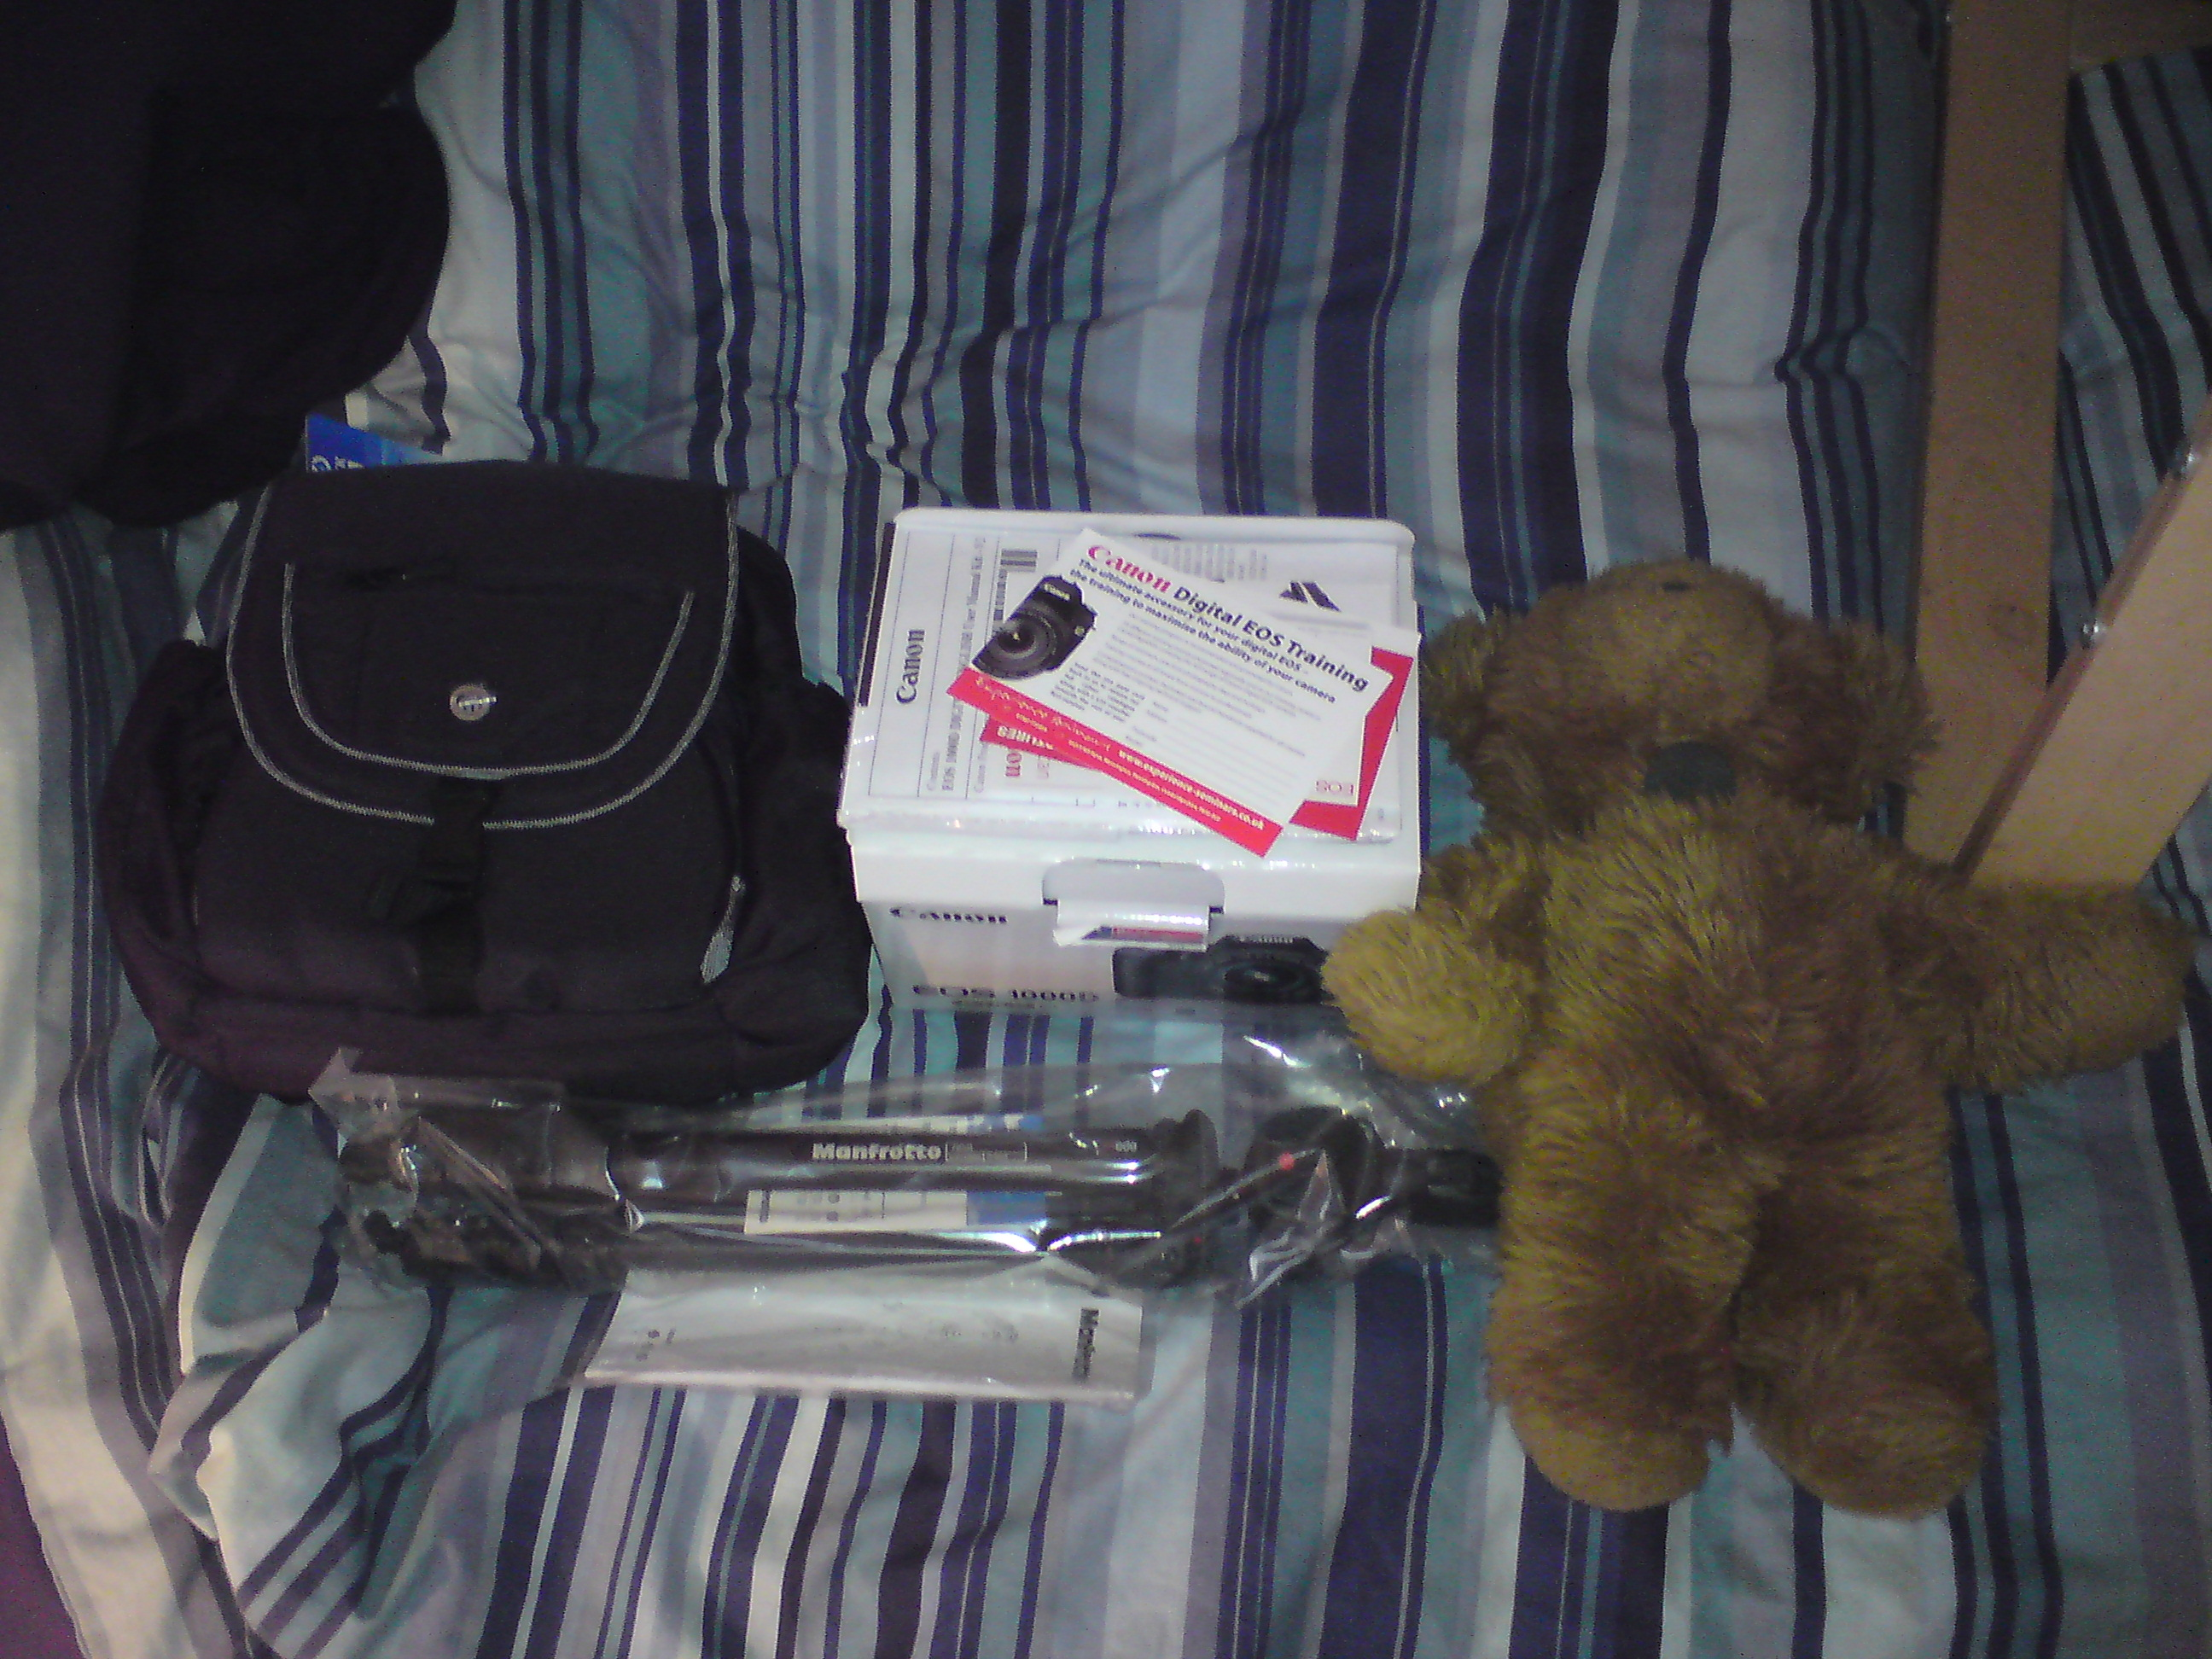 Stanley Bear acts as a size guide for the tripod